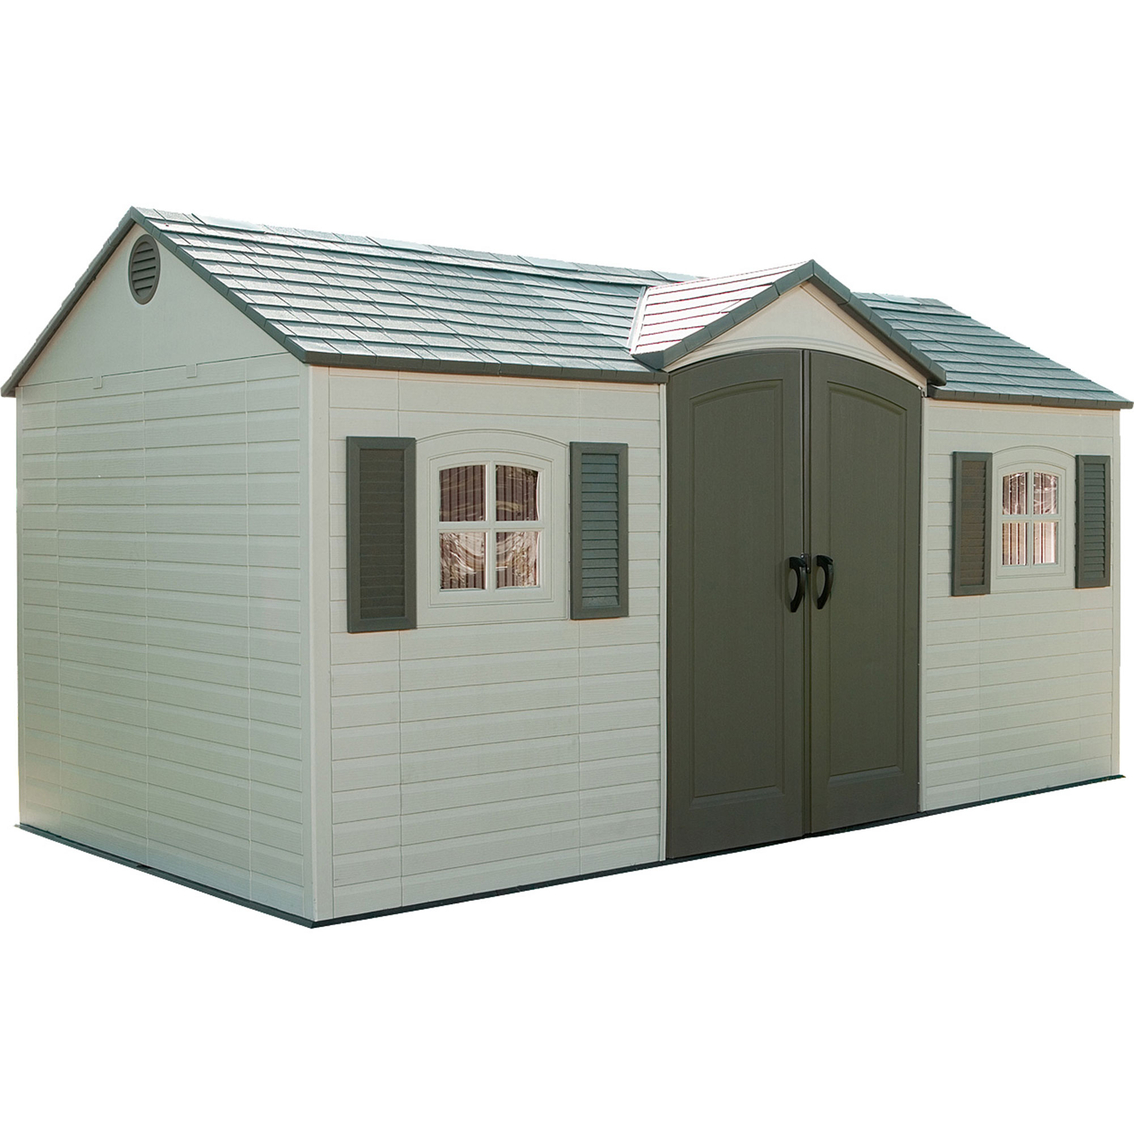 x building qlt wid shed hei p spin barn storage roof prod sheds outdoor arrow